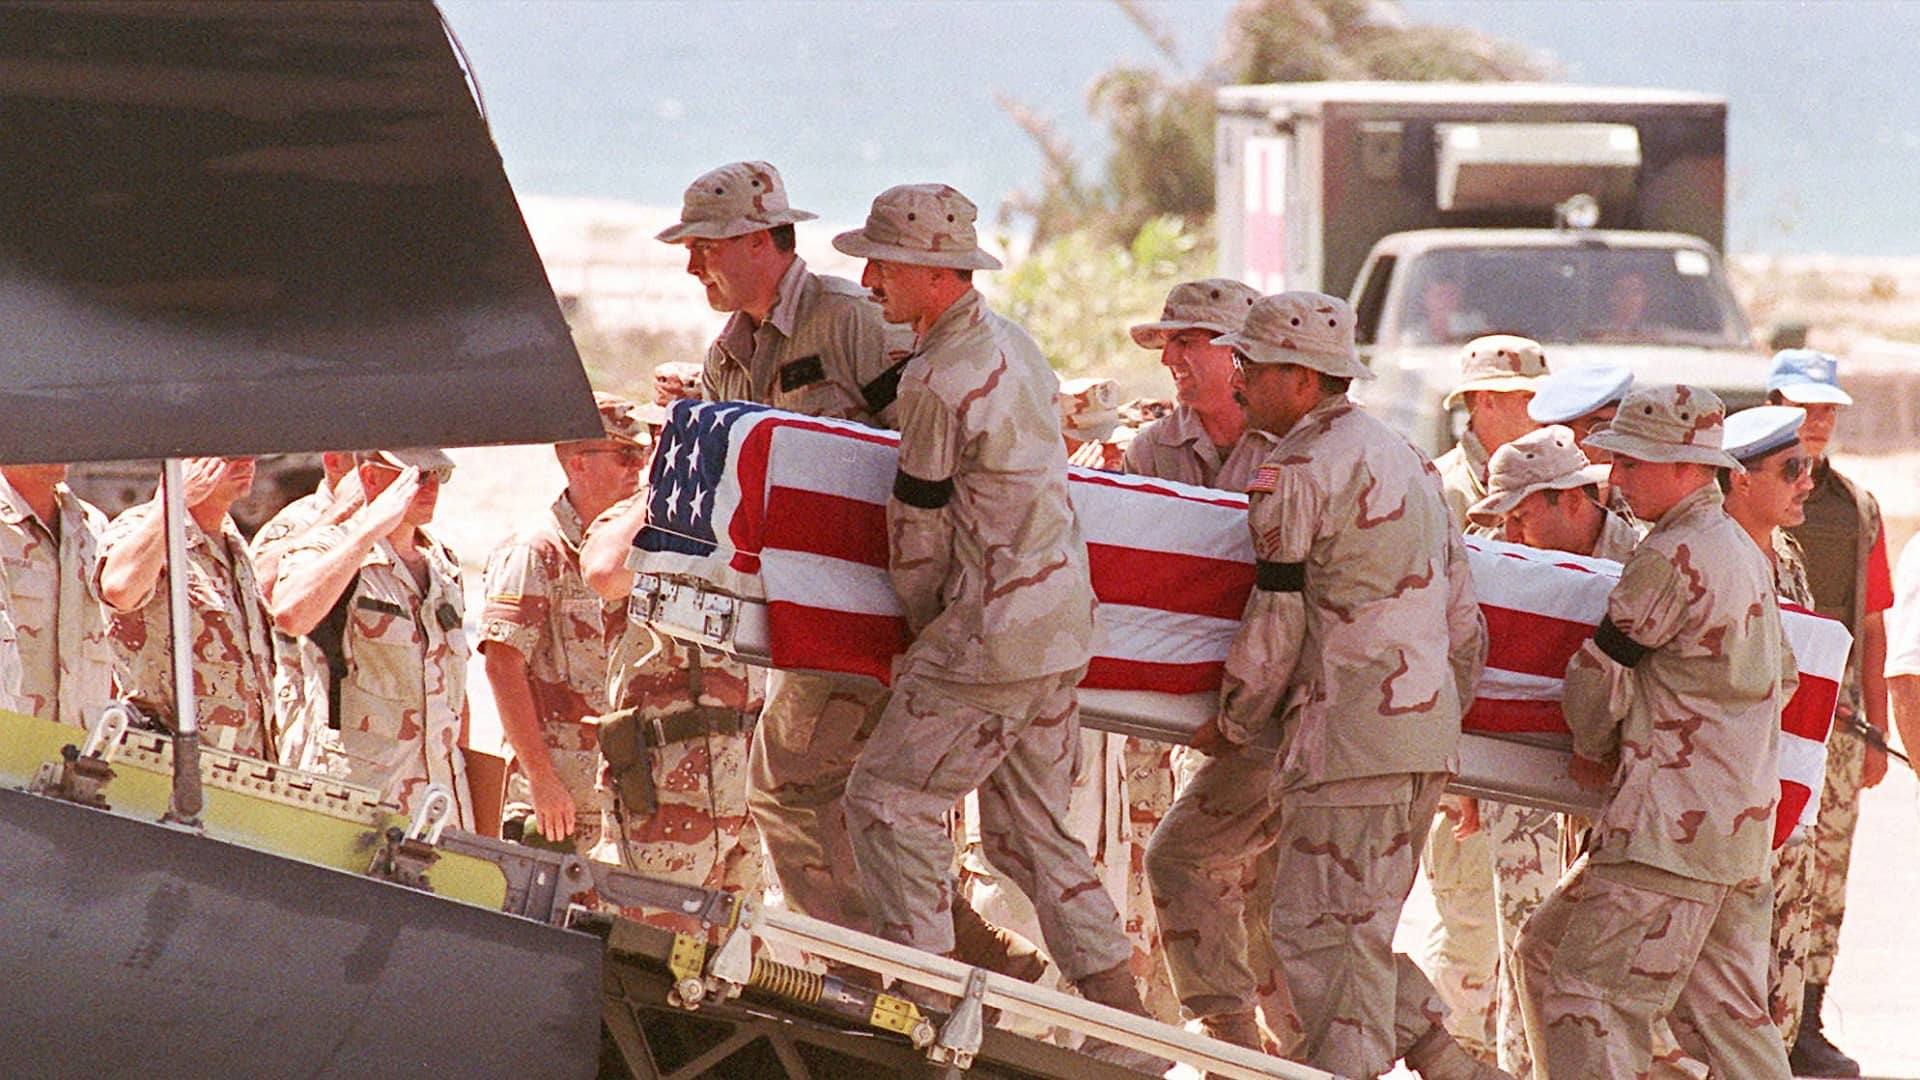 Afghan war's end quiets chaplain's litany of funeral prayers